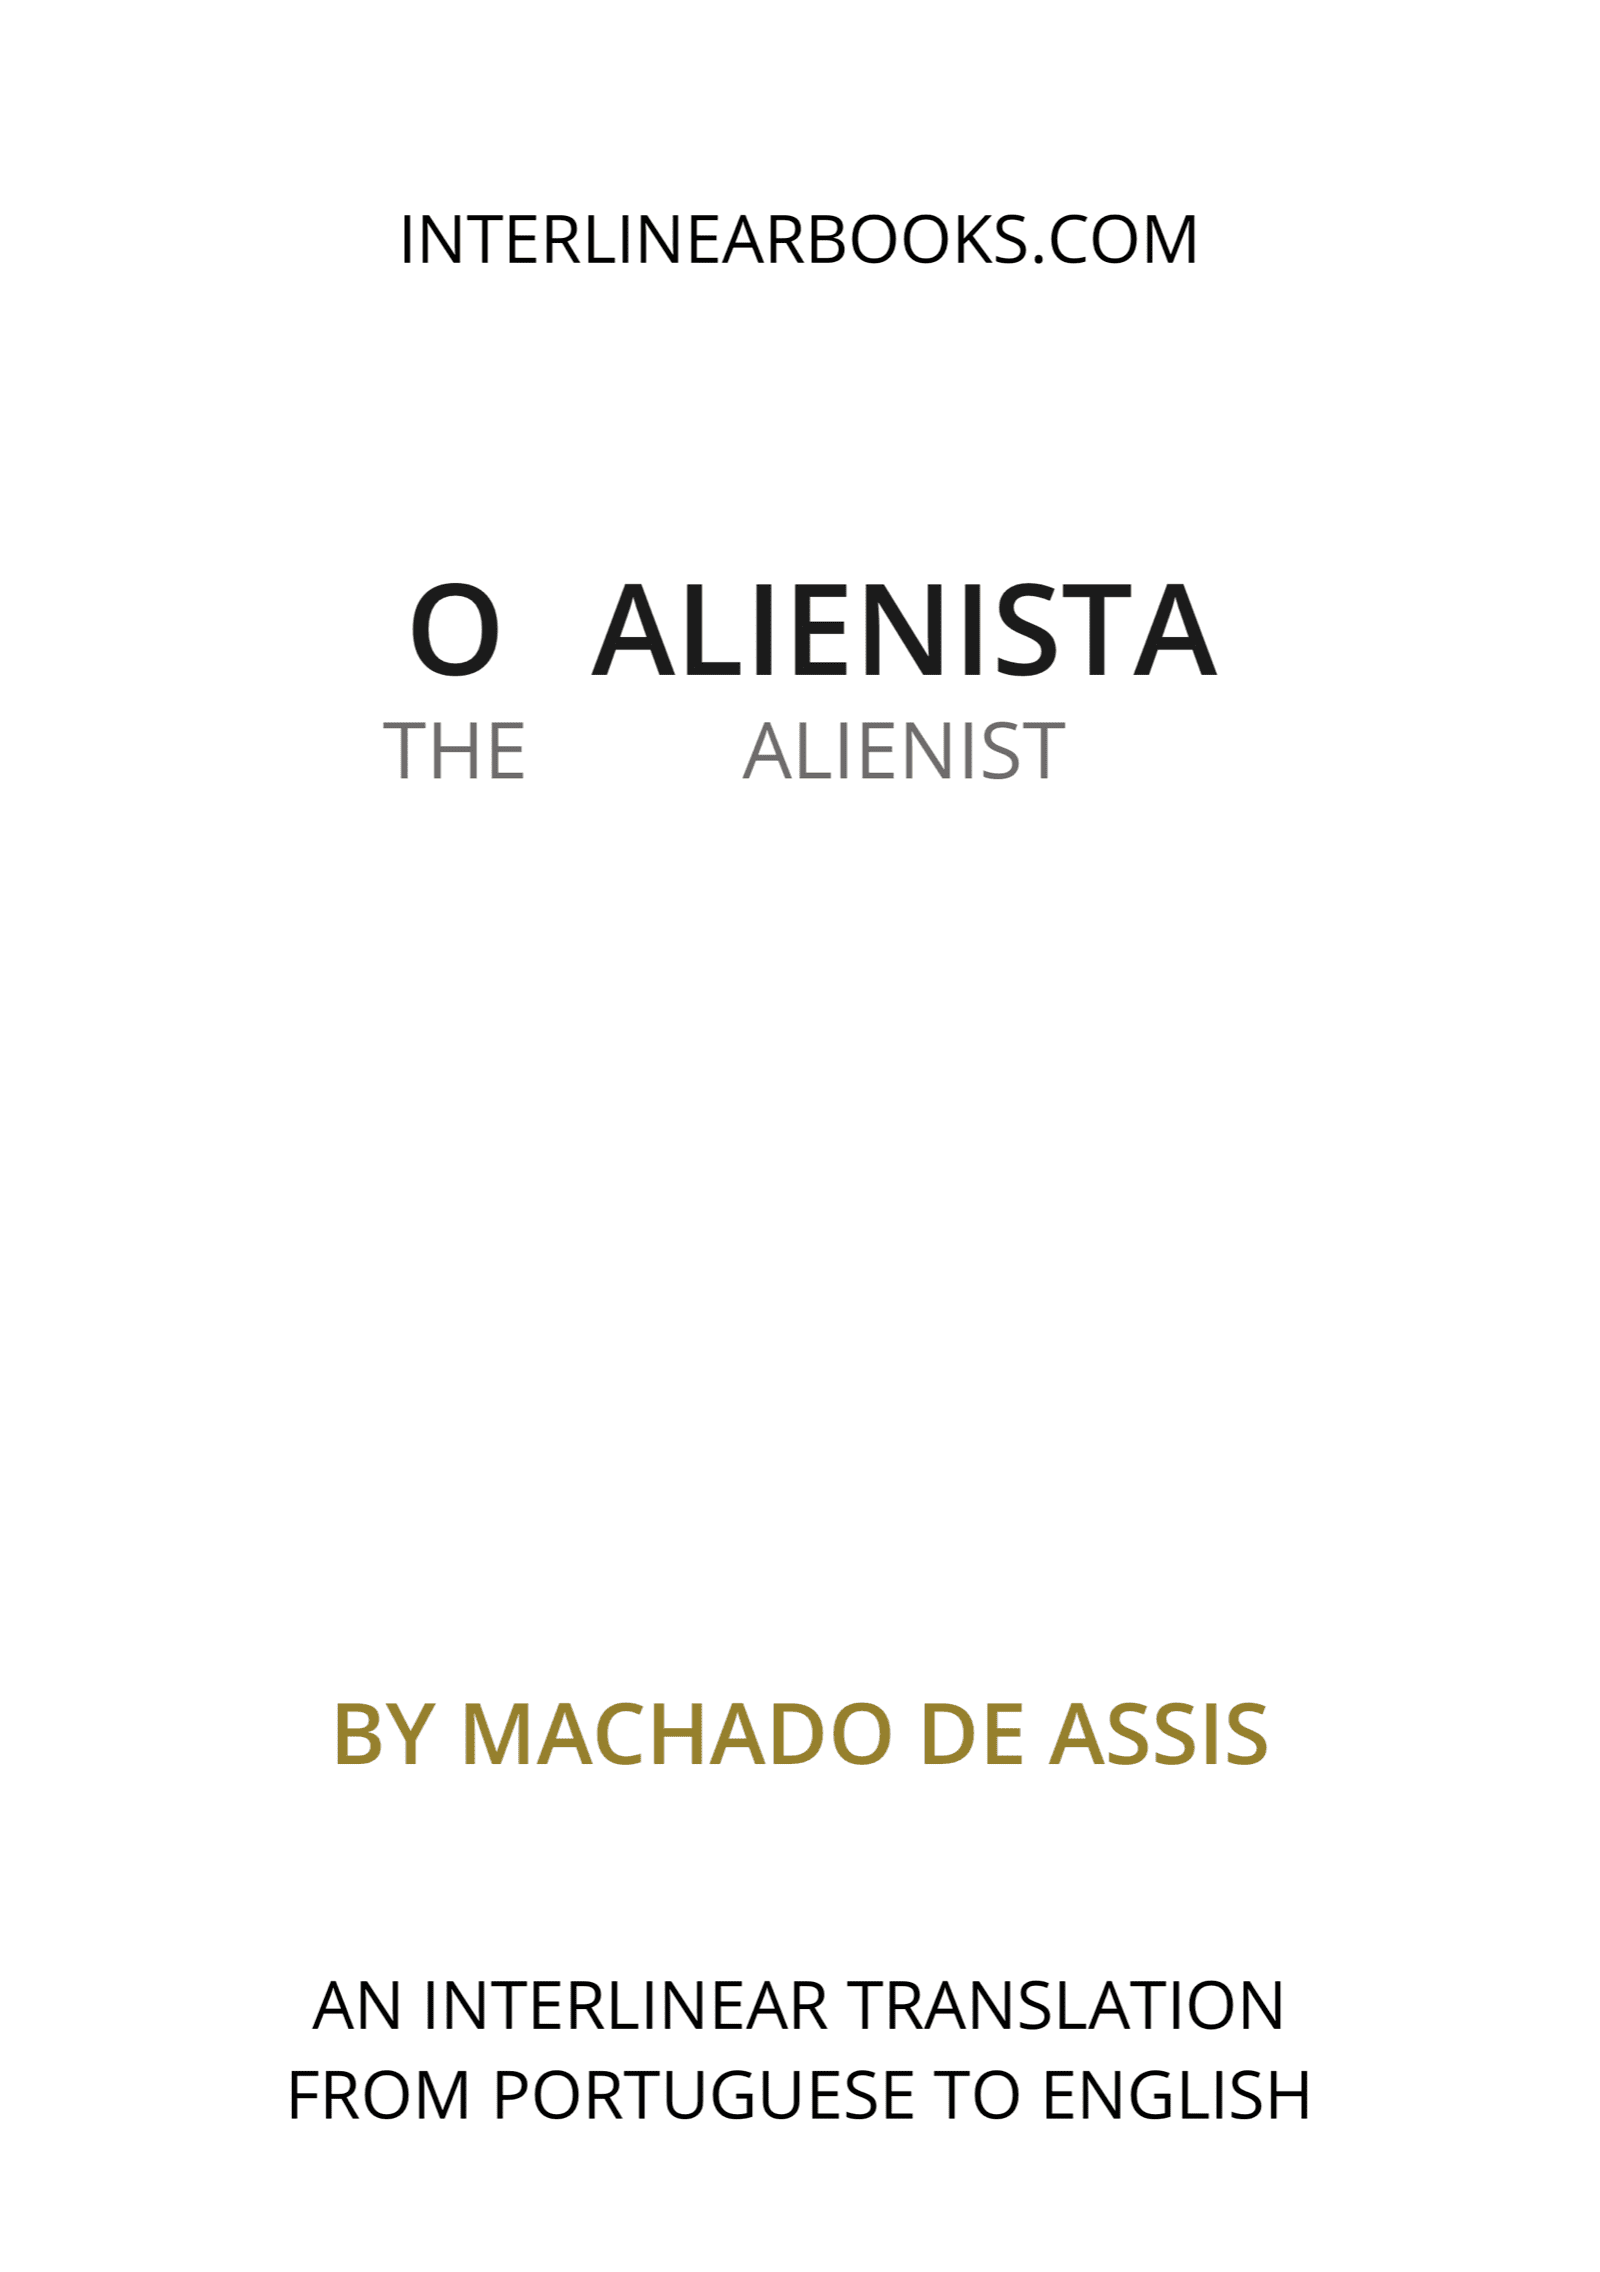 Portuguese book: O alienista / The Alienist